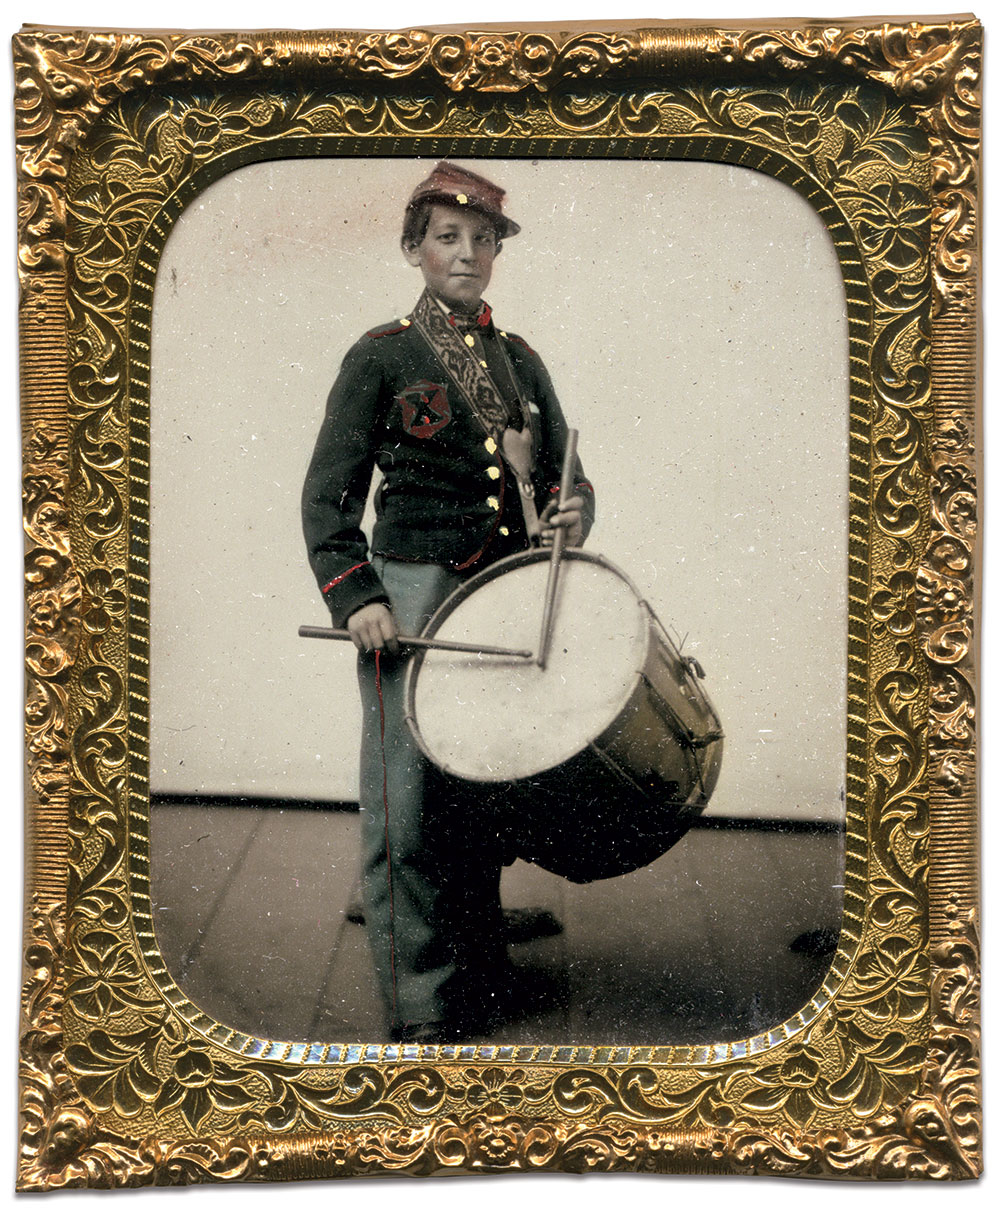 Sixth-plate tintype by an unidentified photographer. Mike Werner Collection.